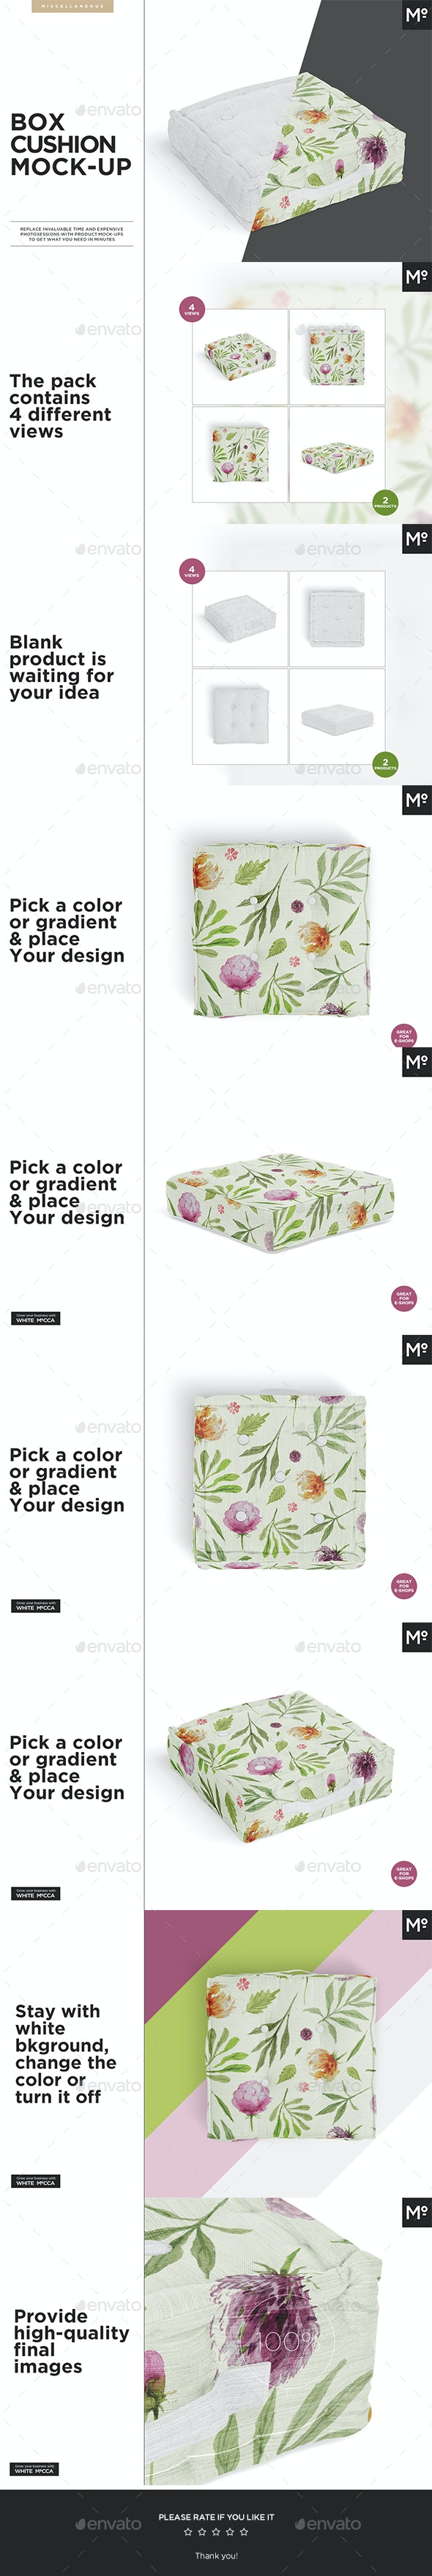 Box Cushions Mock-up - Miscellaneous Product Mock-Ups